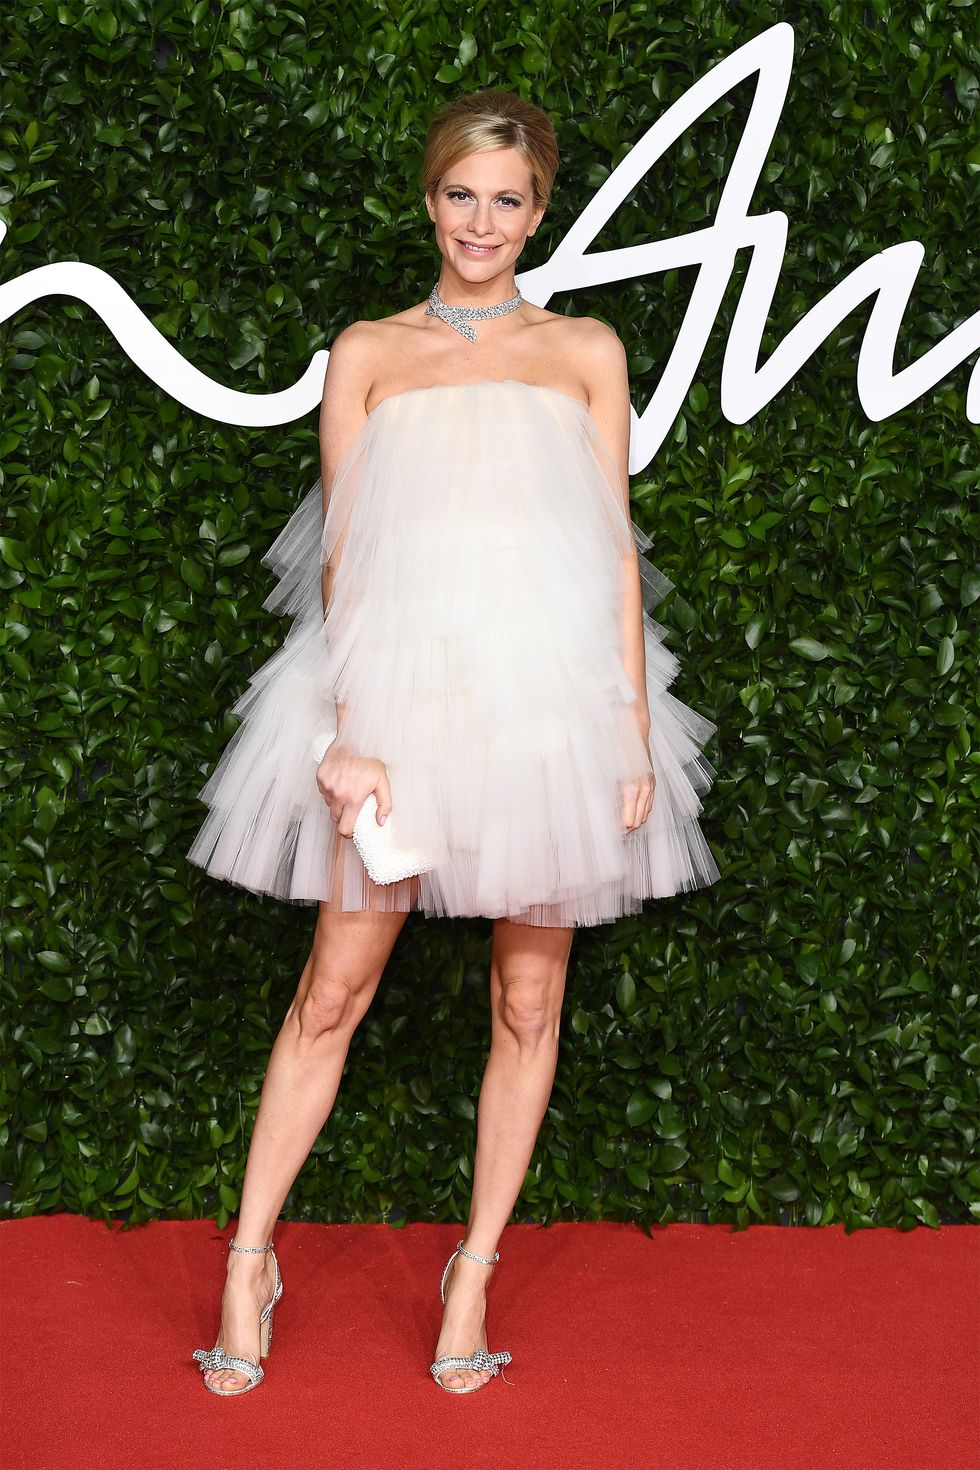 hbz-fashion-awards-2019-poppy-delevingne-1575317048